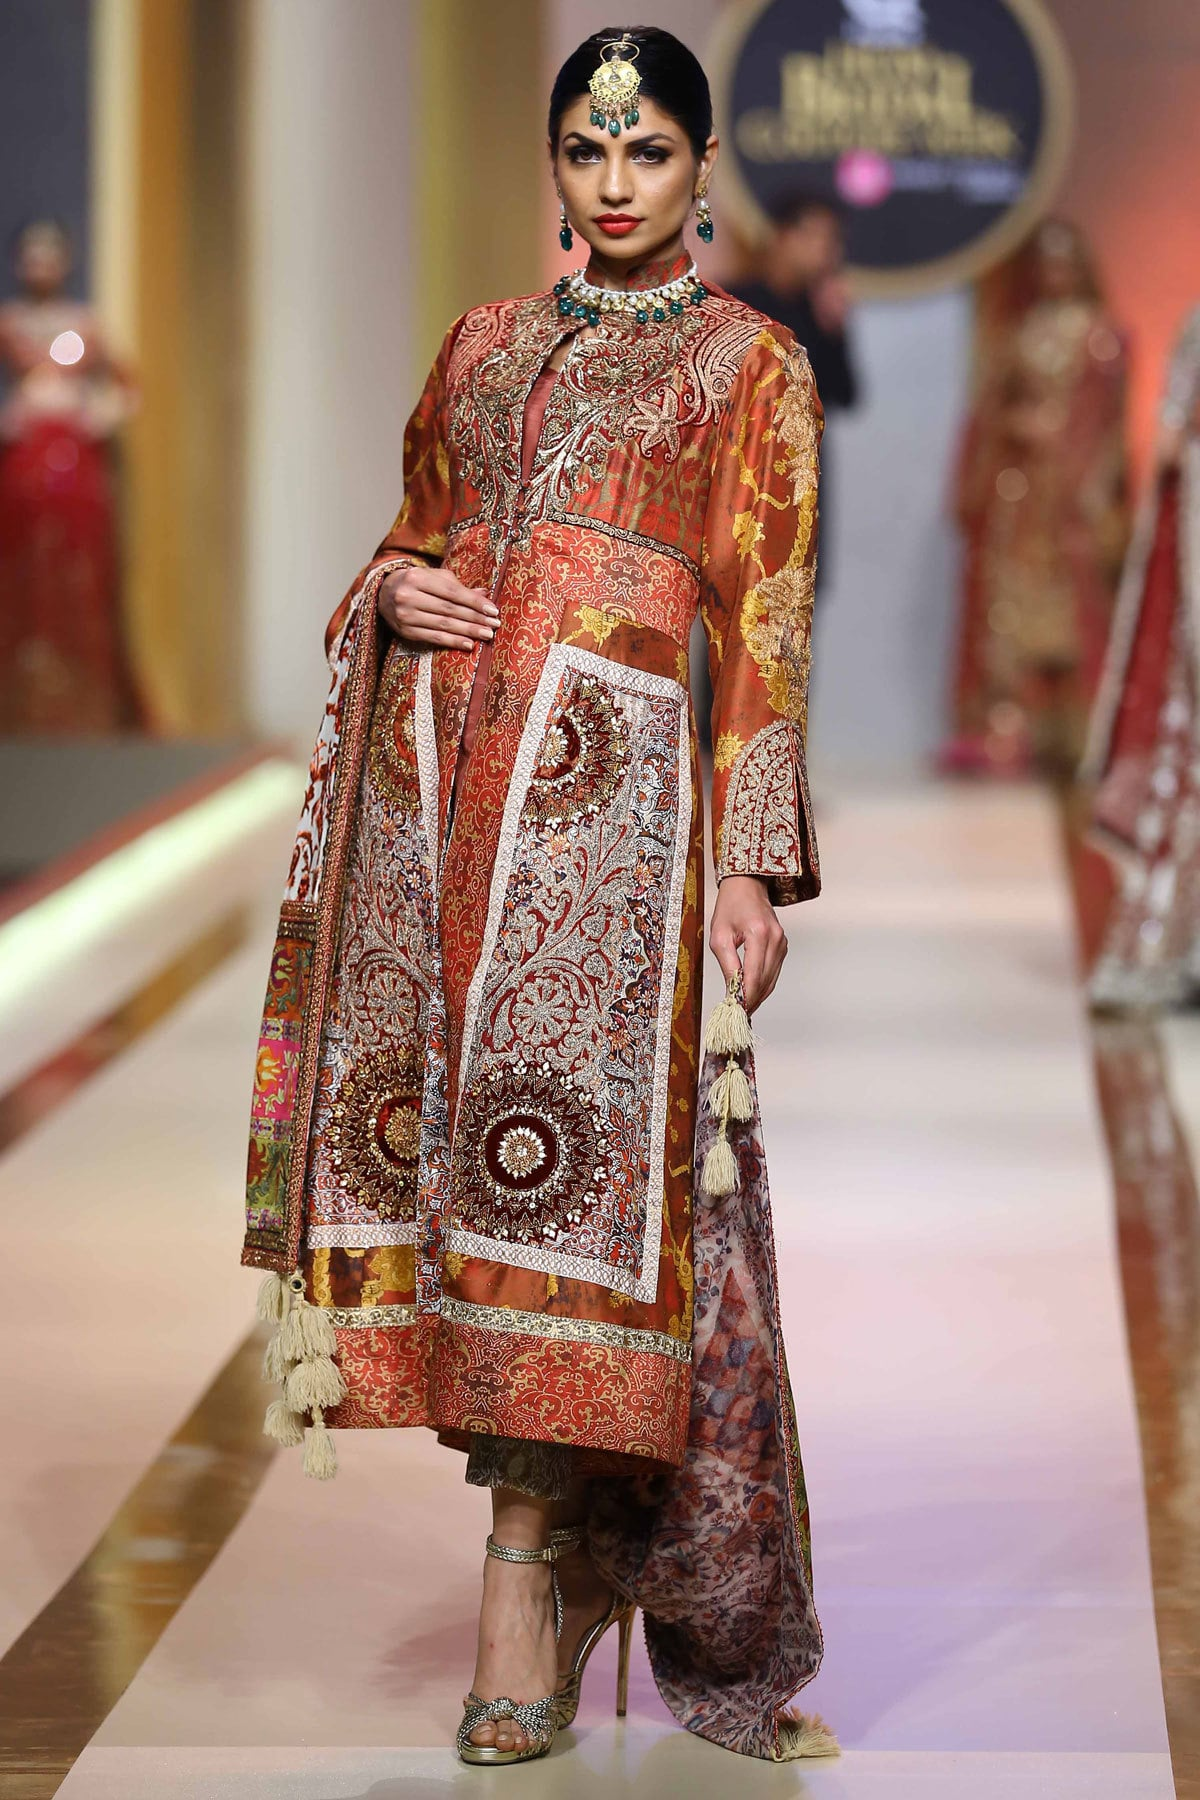 The Classic Red design, BCW Day 2. Photo: M. Haris Usmani, Ahsan Qureshy.